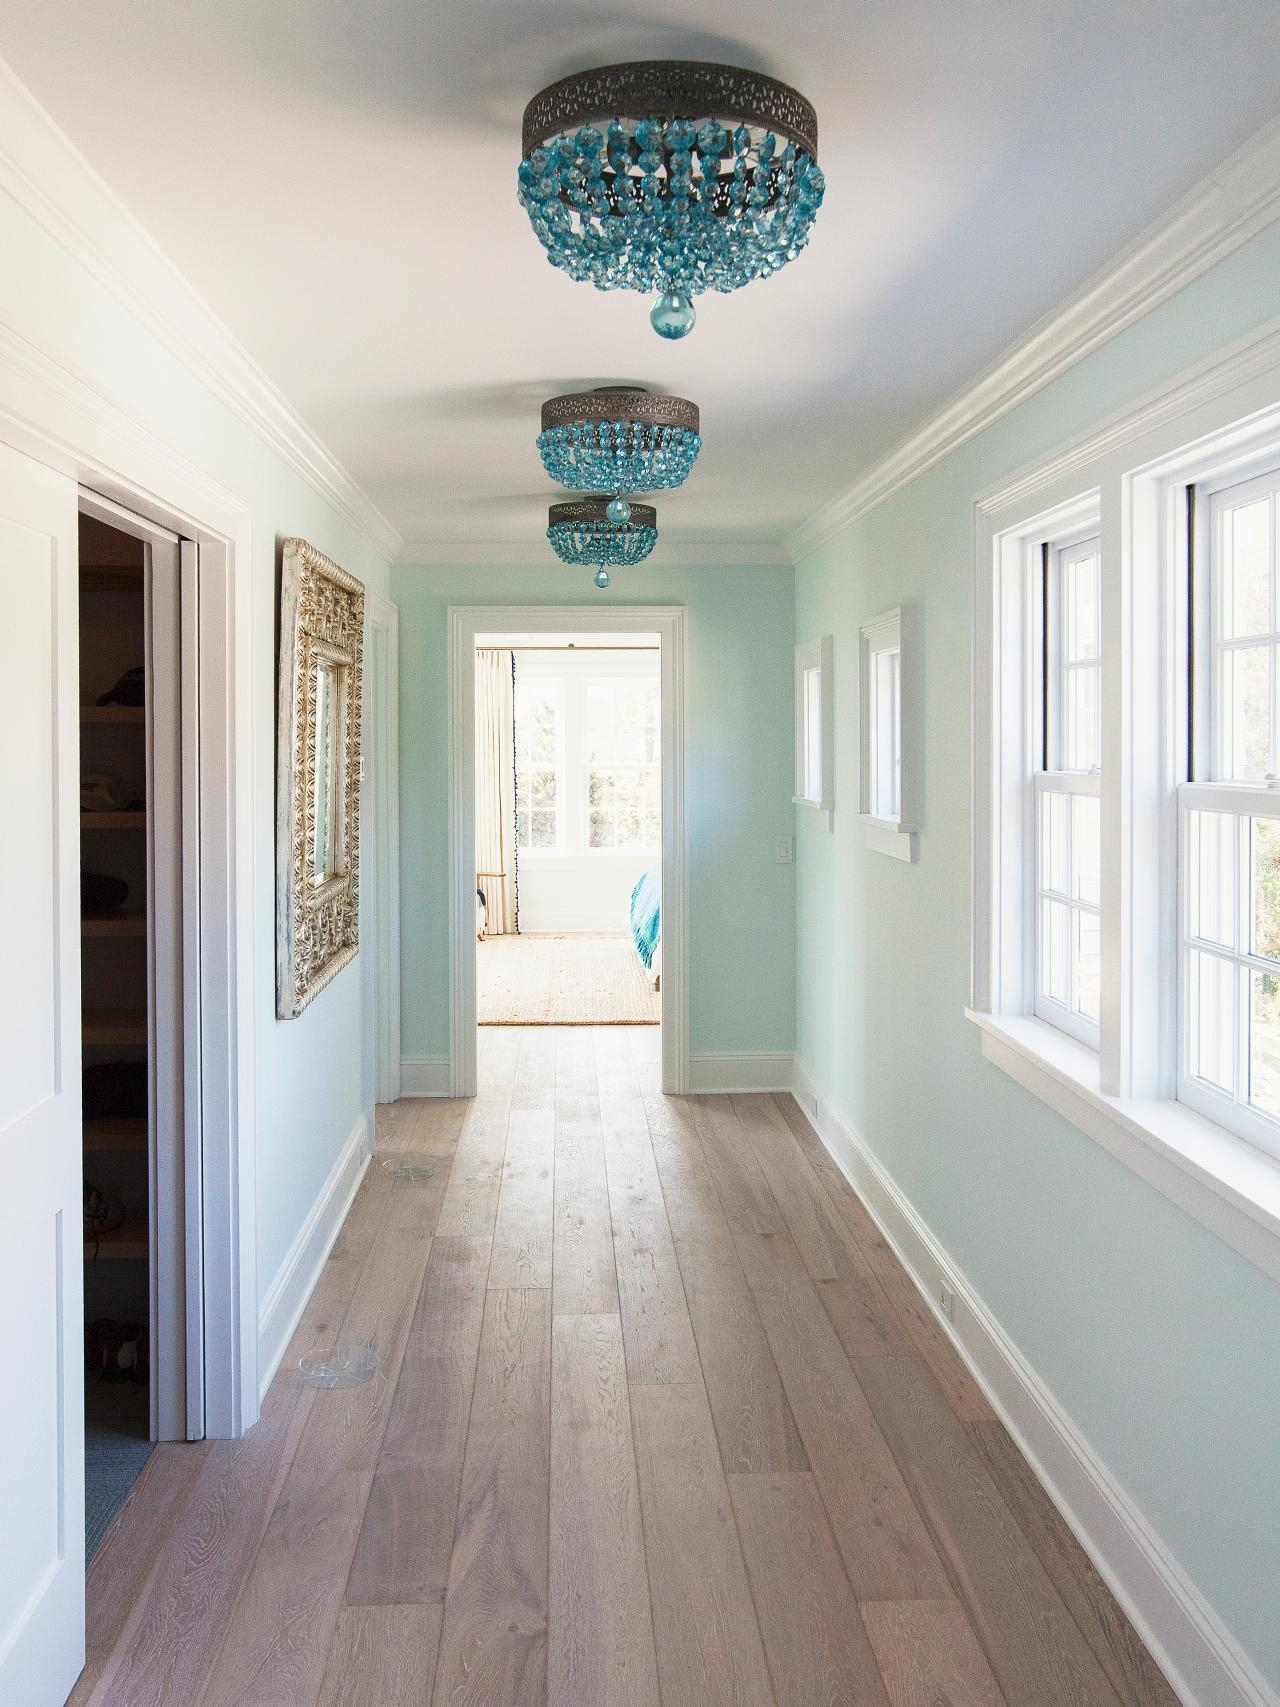 Interior Foyer Light With Black Copper Glass Lantern Chandelier For Small Hallway Chandeliers (Image 9 of 15)